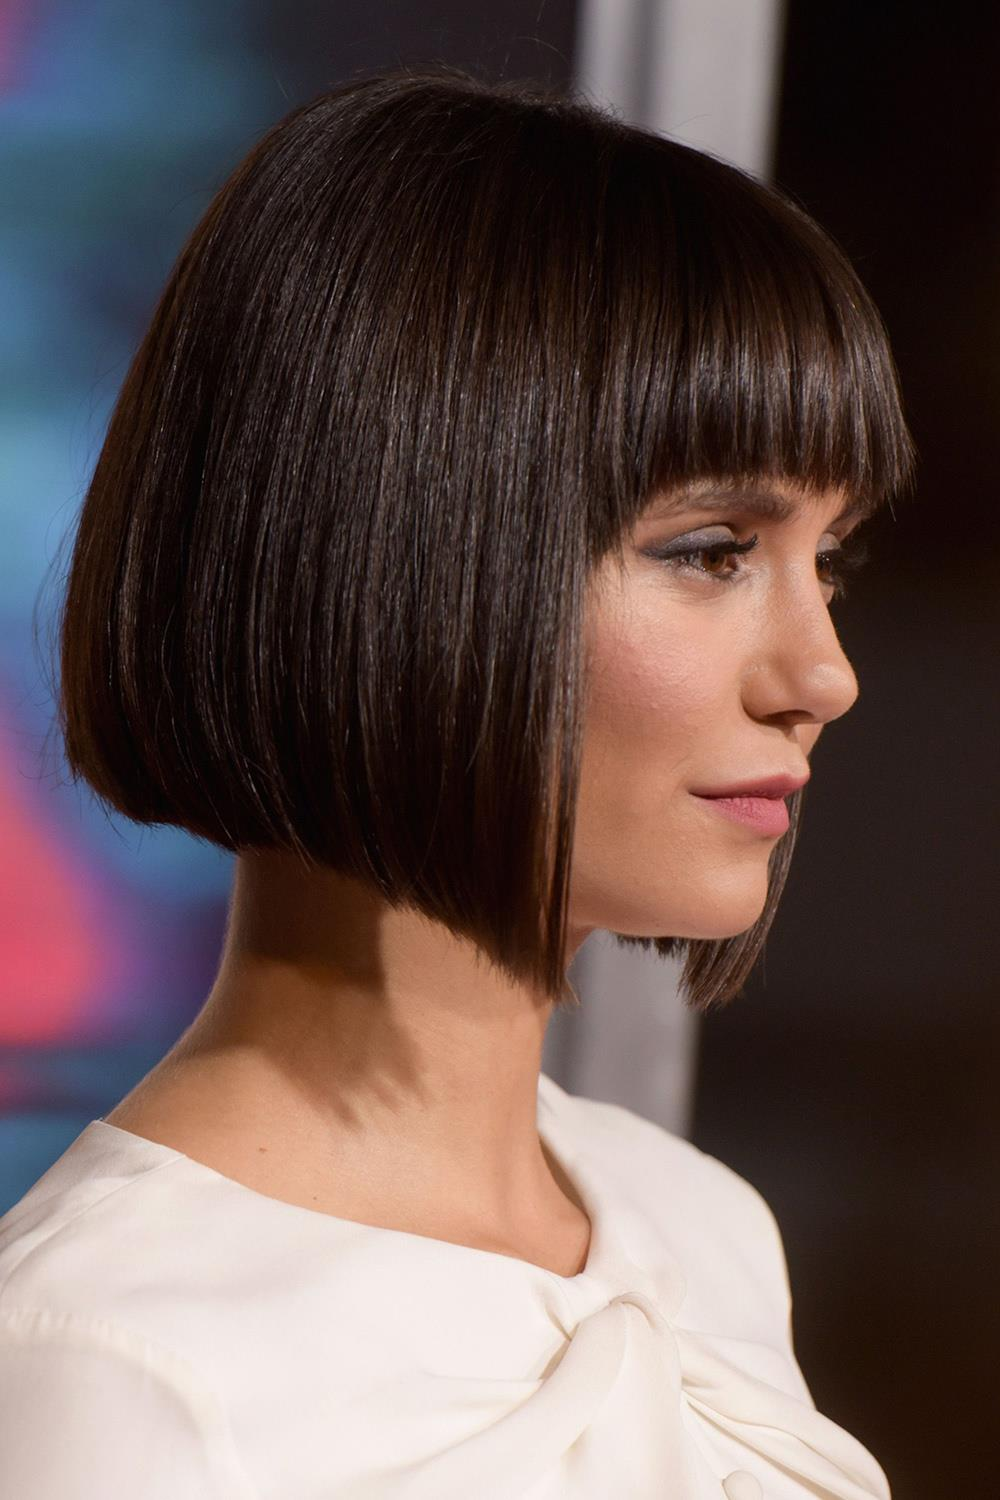 2019 NEW HAIRCUTS AND TRICKS THAT MAKE THE FACE THINNER INSTANTLY 2